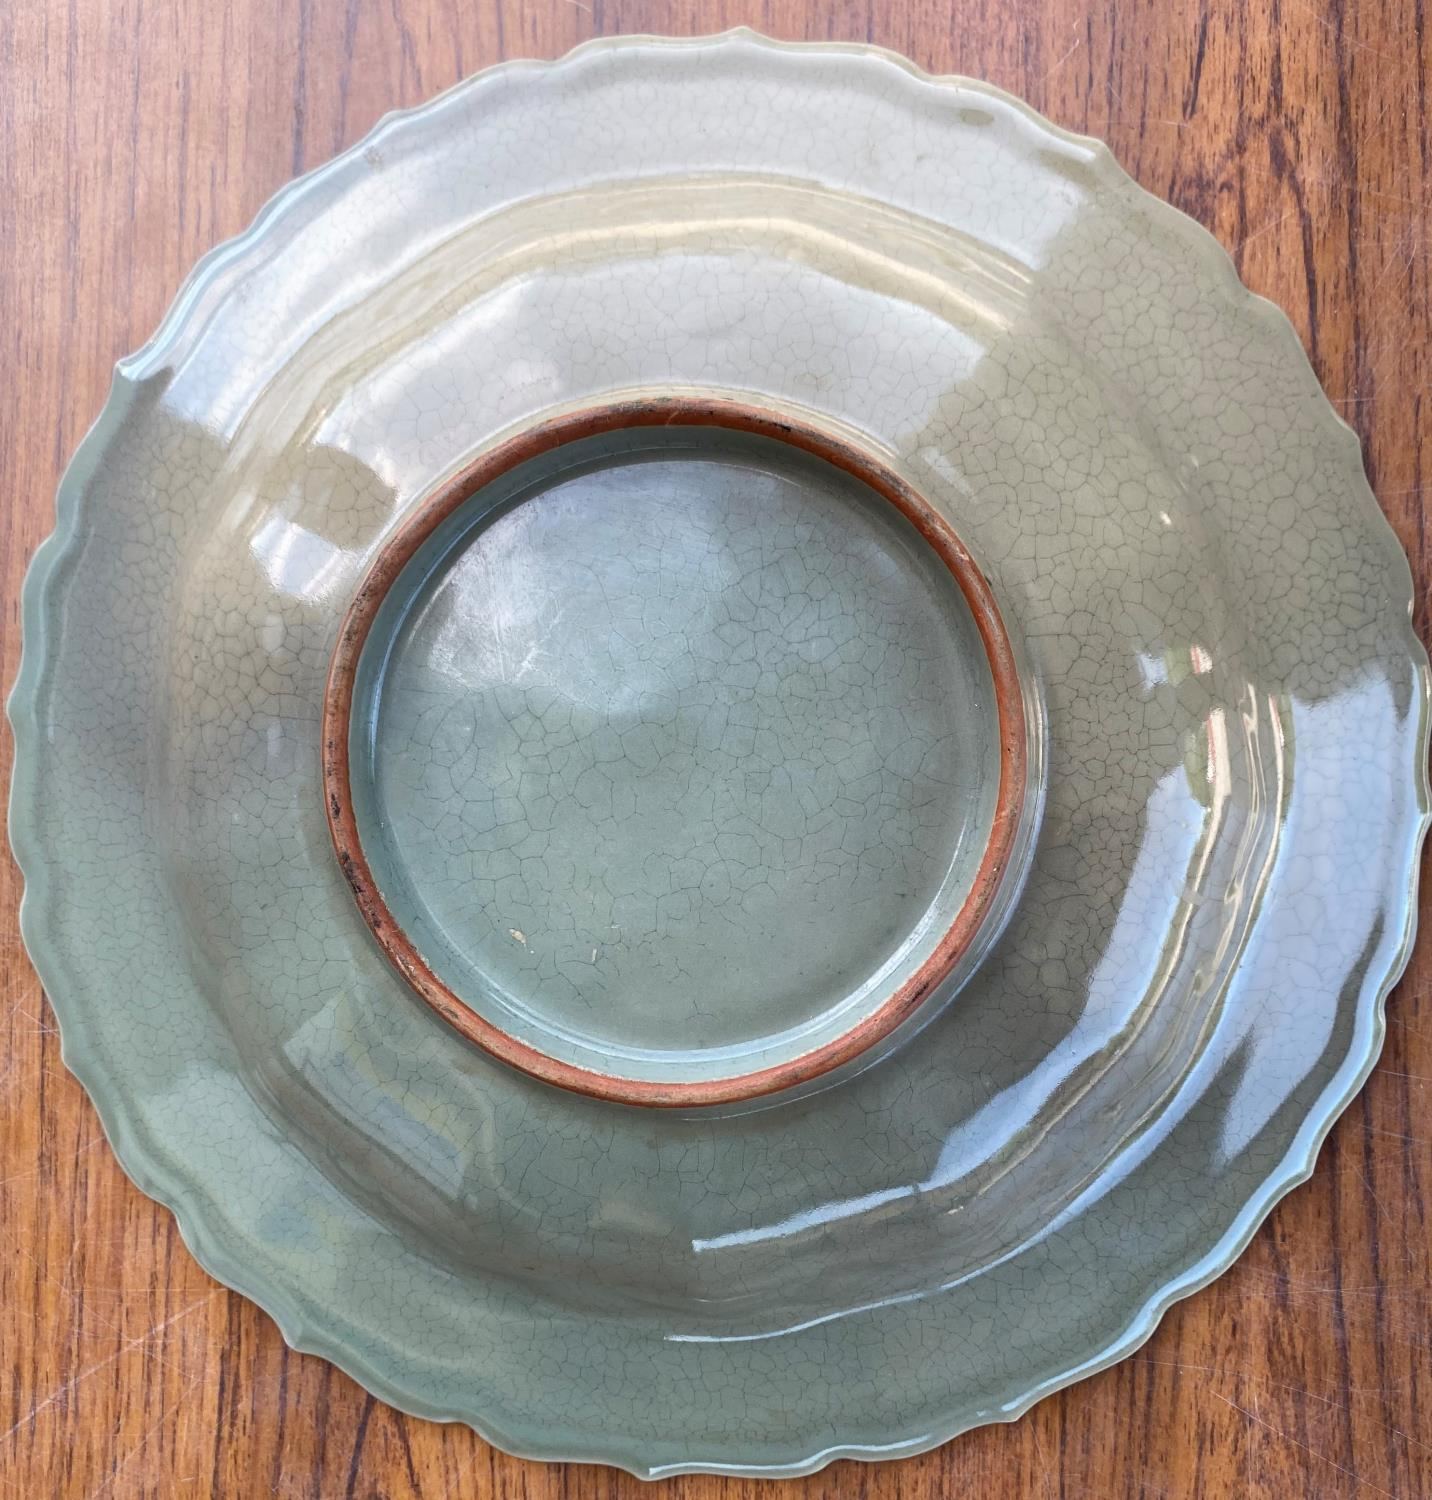 A Chinese celadon glaze dish with scalloped border, diameter 31cm and a carved Chinese hardwood - Image 4 of 4